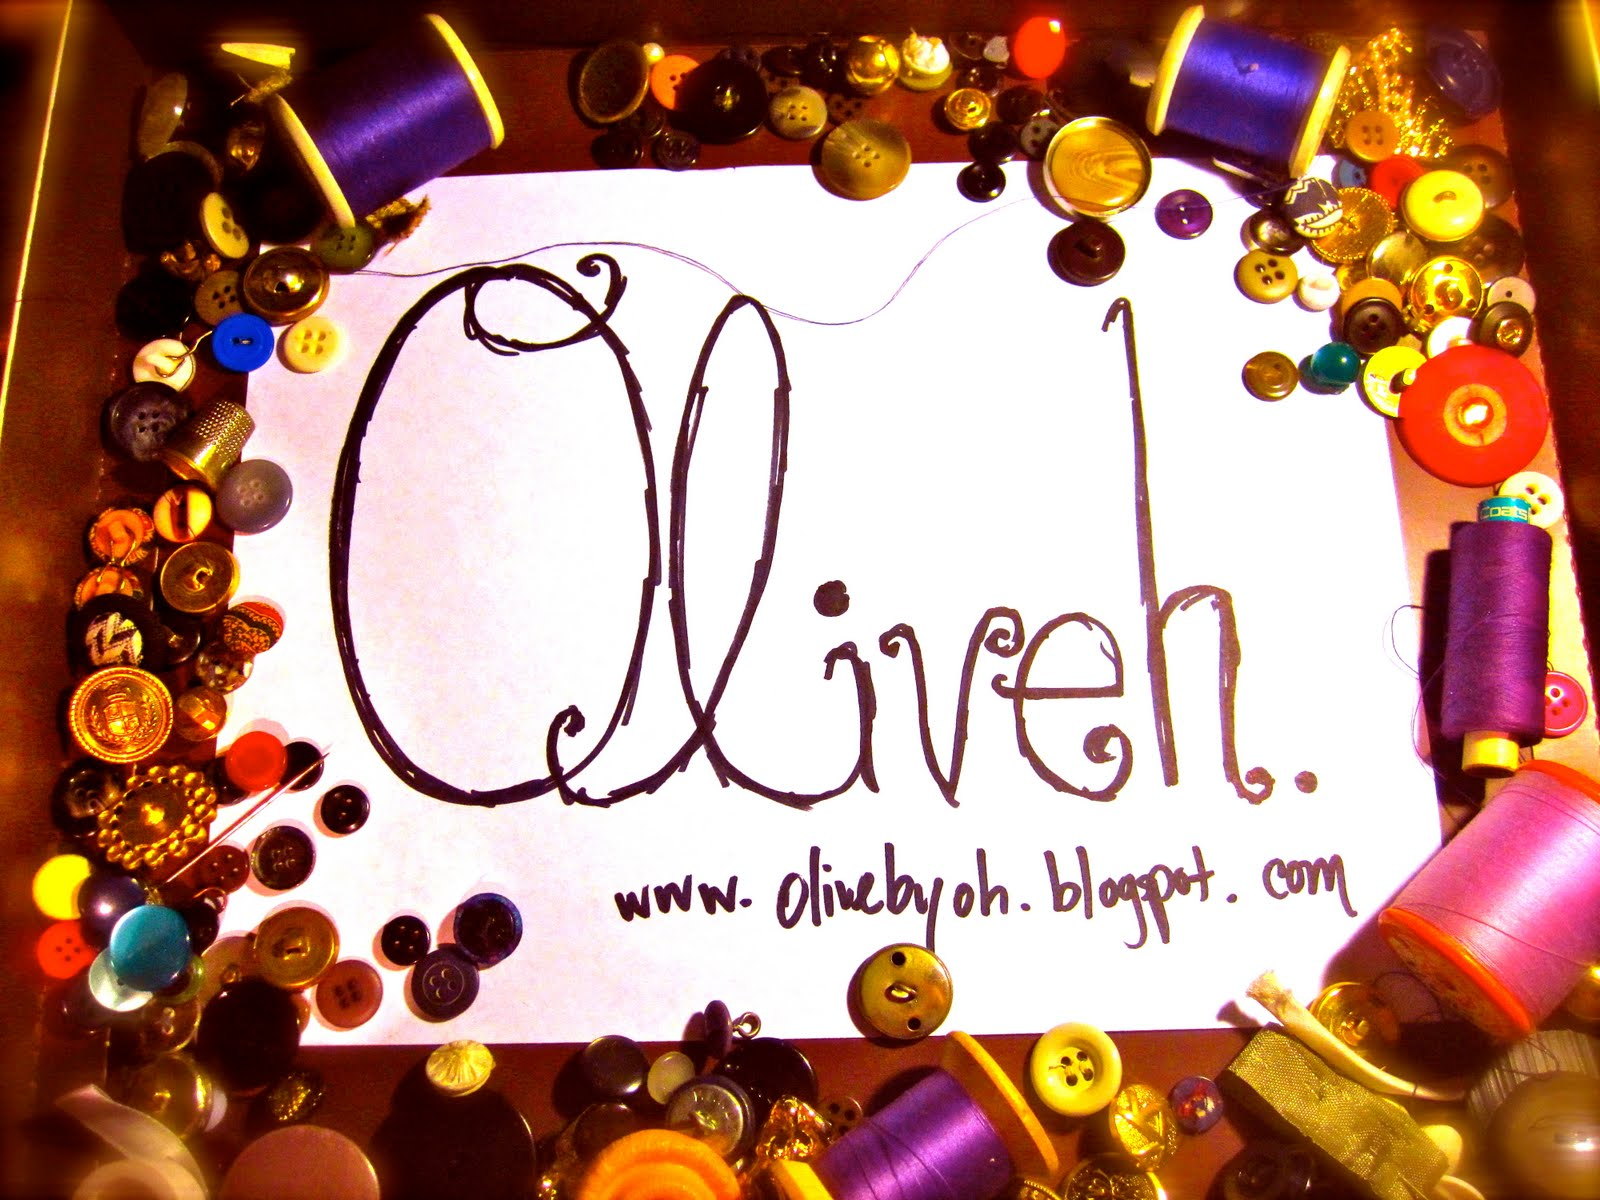 Oliveh.